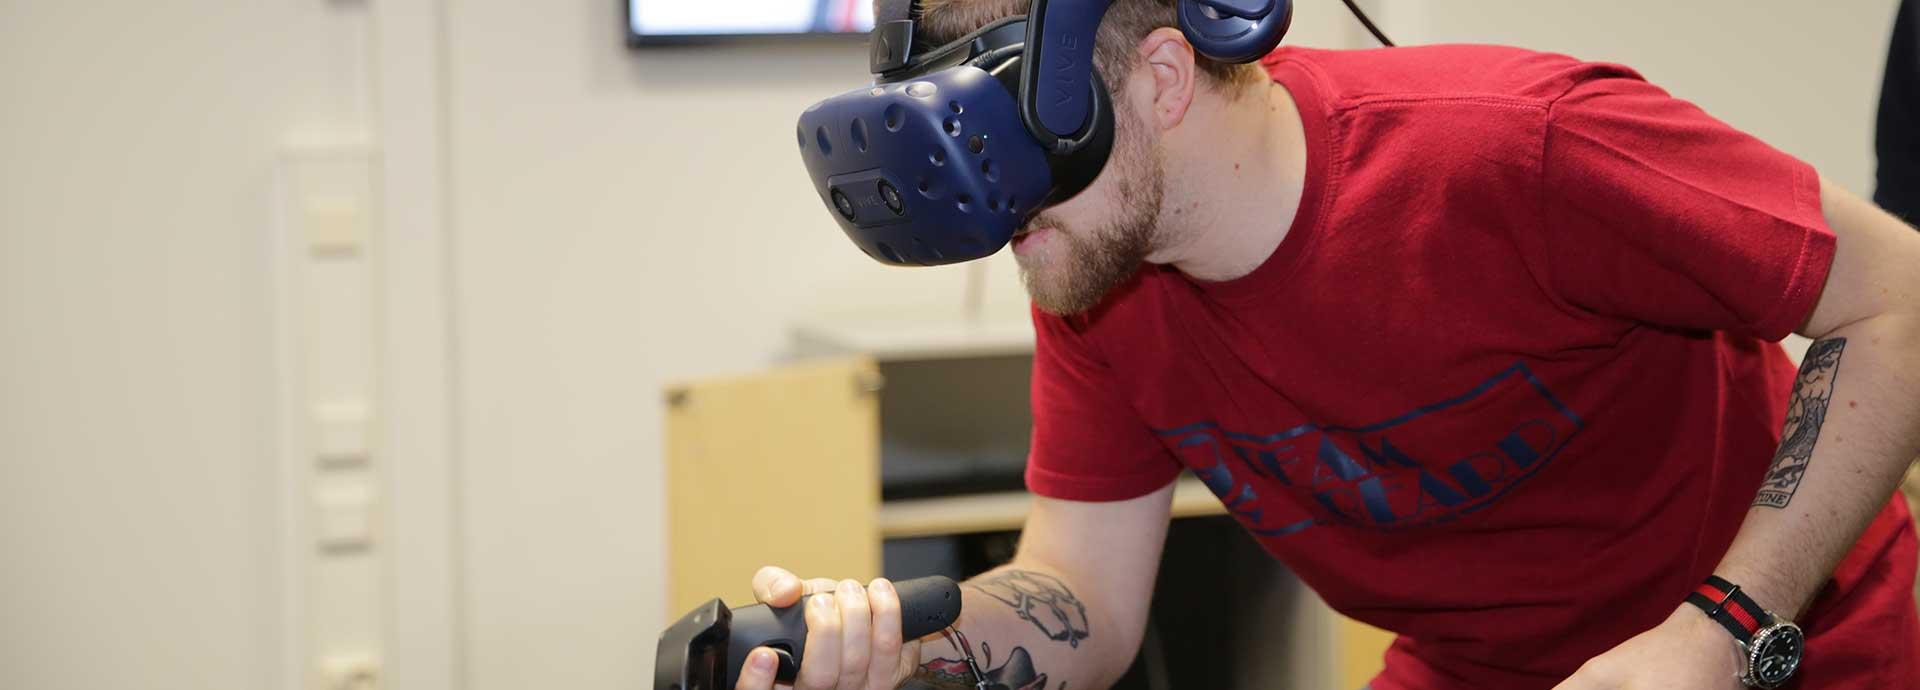 Virtual reality in the world of training